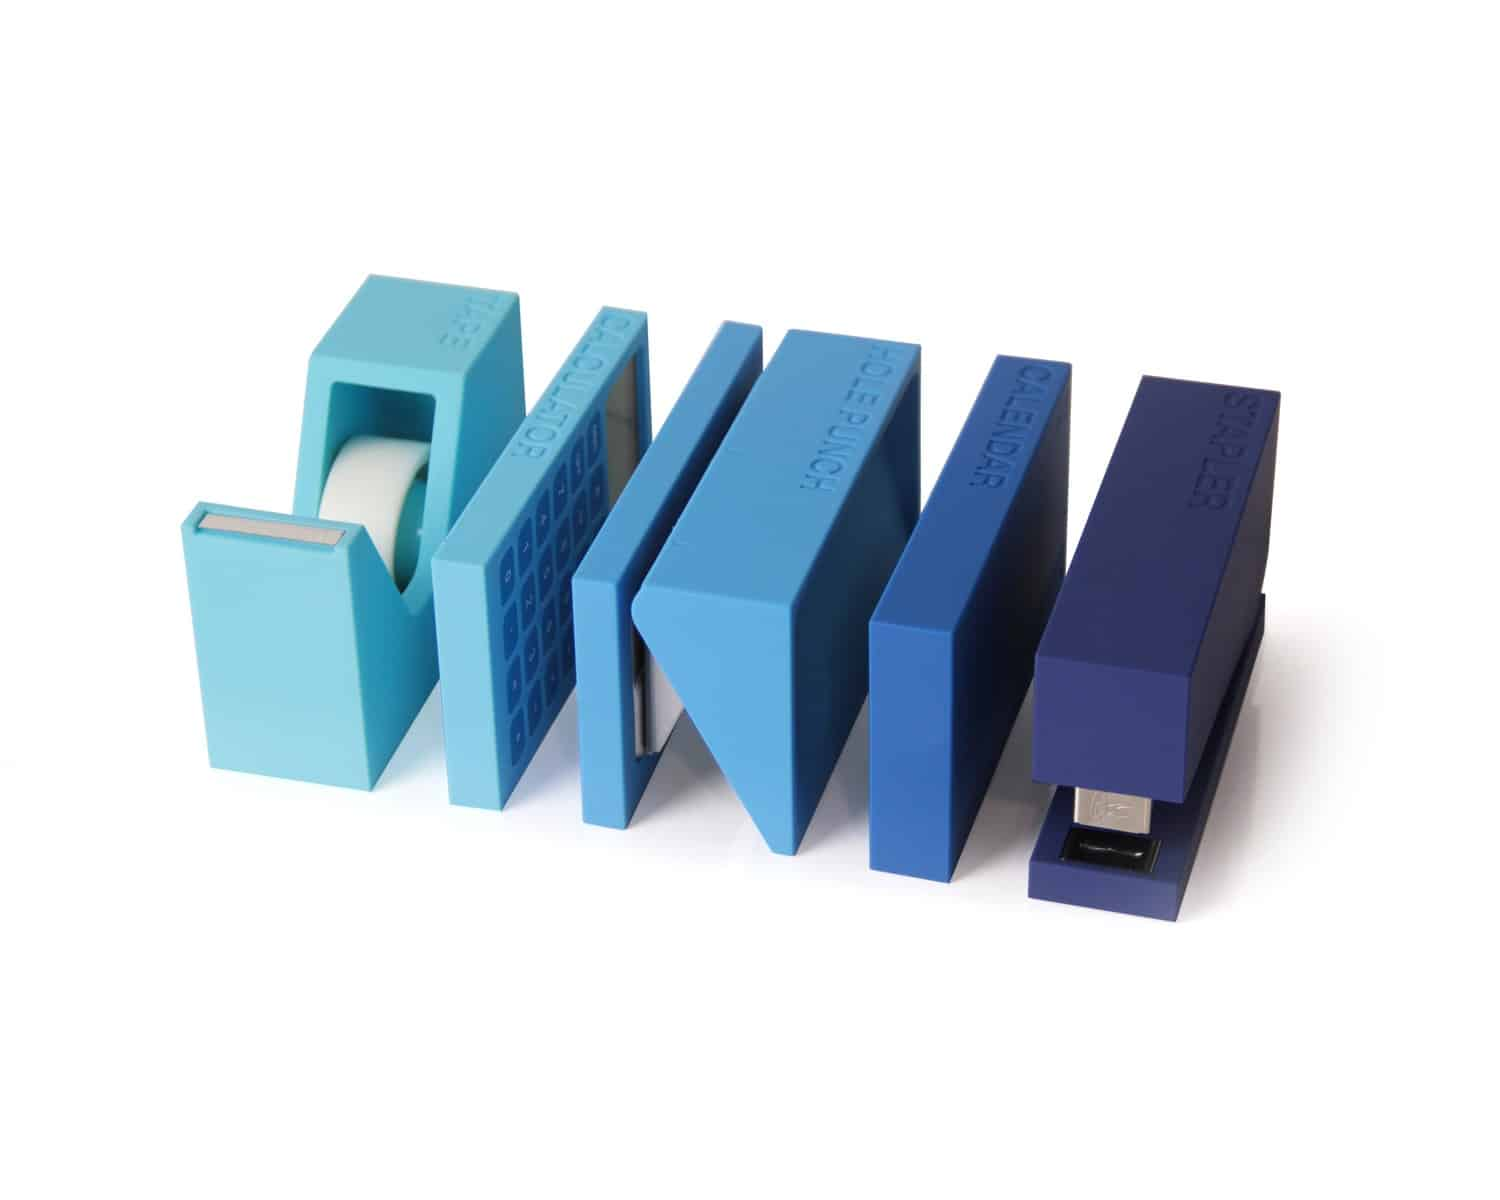 Lexon buro desk accessories set noveltystreet - Unique office desk accessories ...